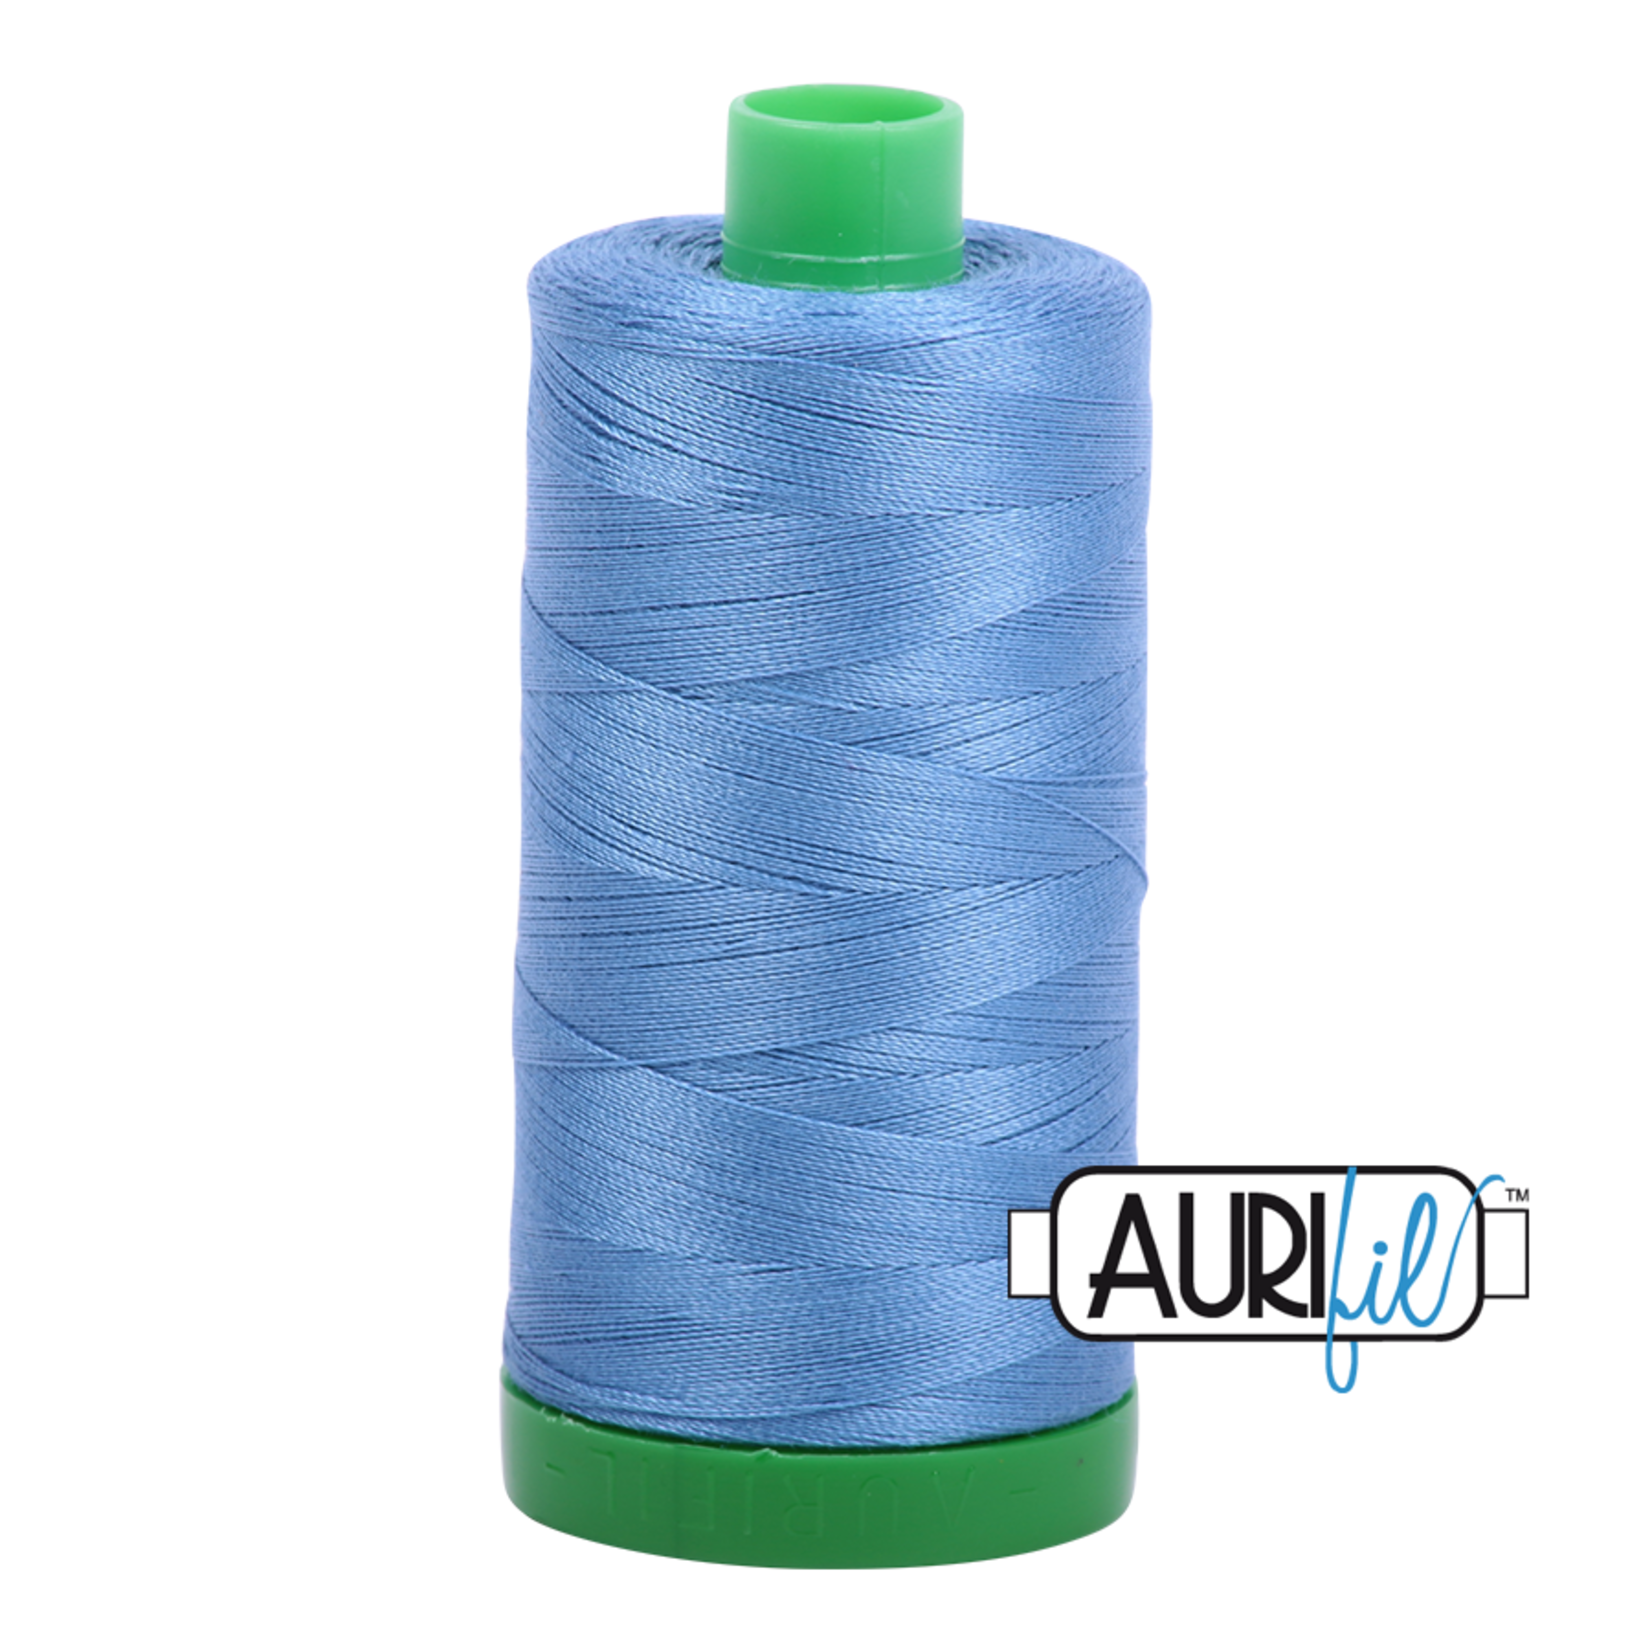 AURIFIL AURIFIL 40 WT Light Wedgewood 2725